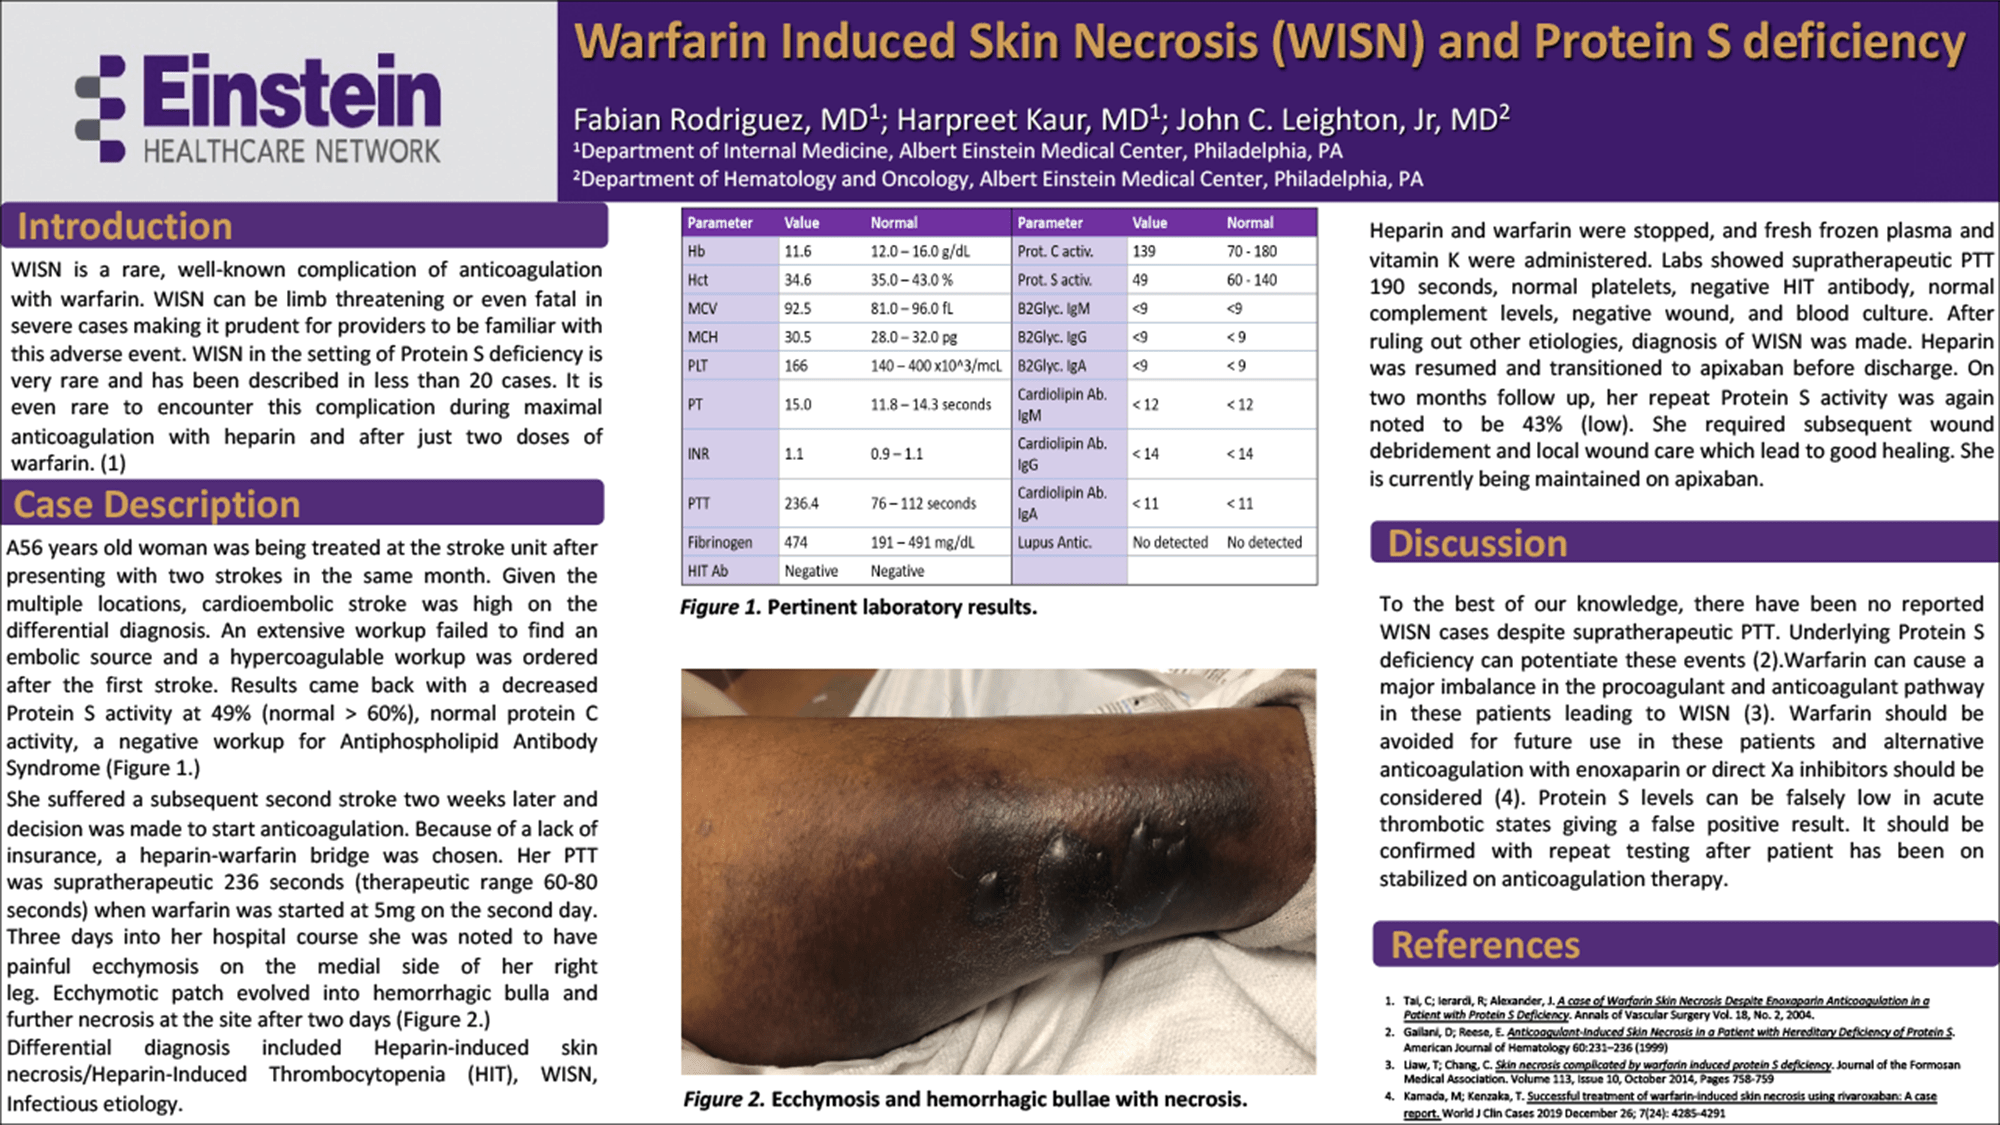 Fabian Rodriguez - PAS-7-Warfarin-Induced-Skin-Necrosis-and-Protein-S-deficiency